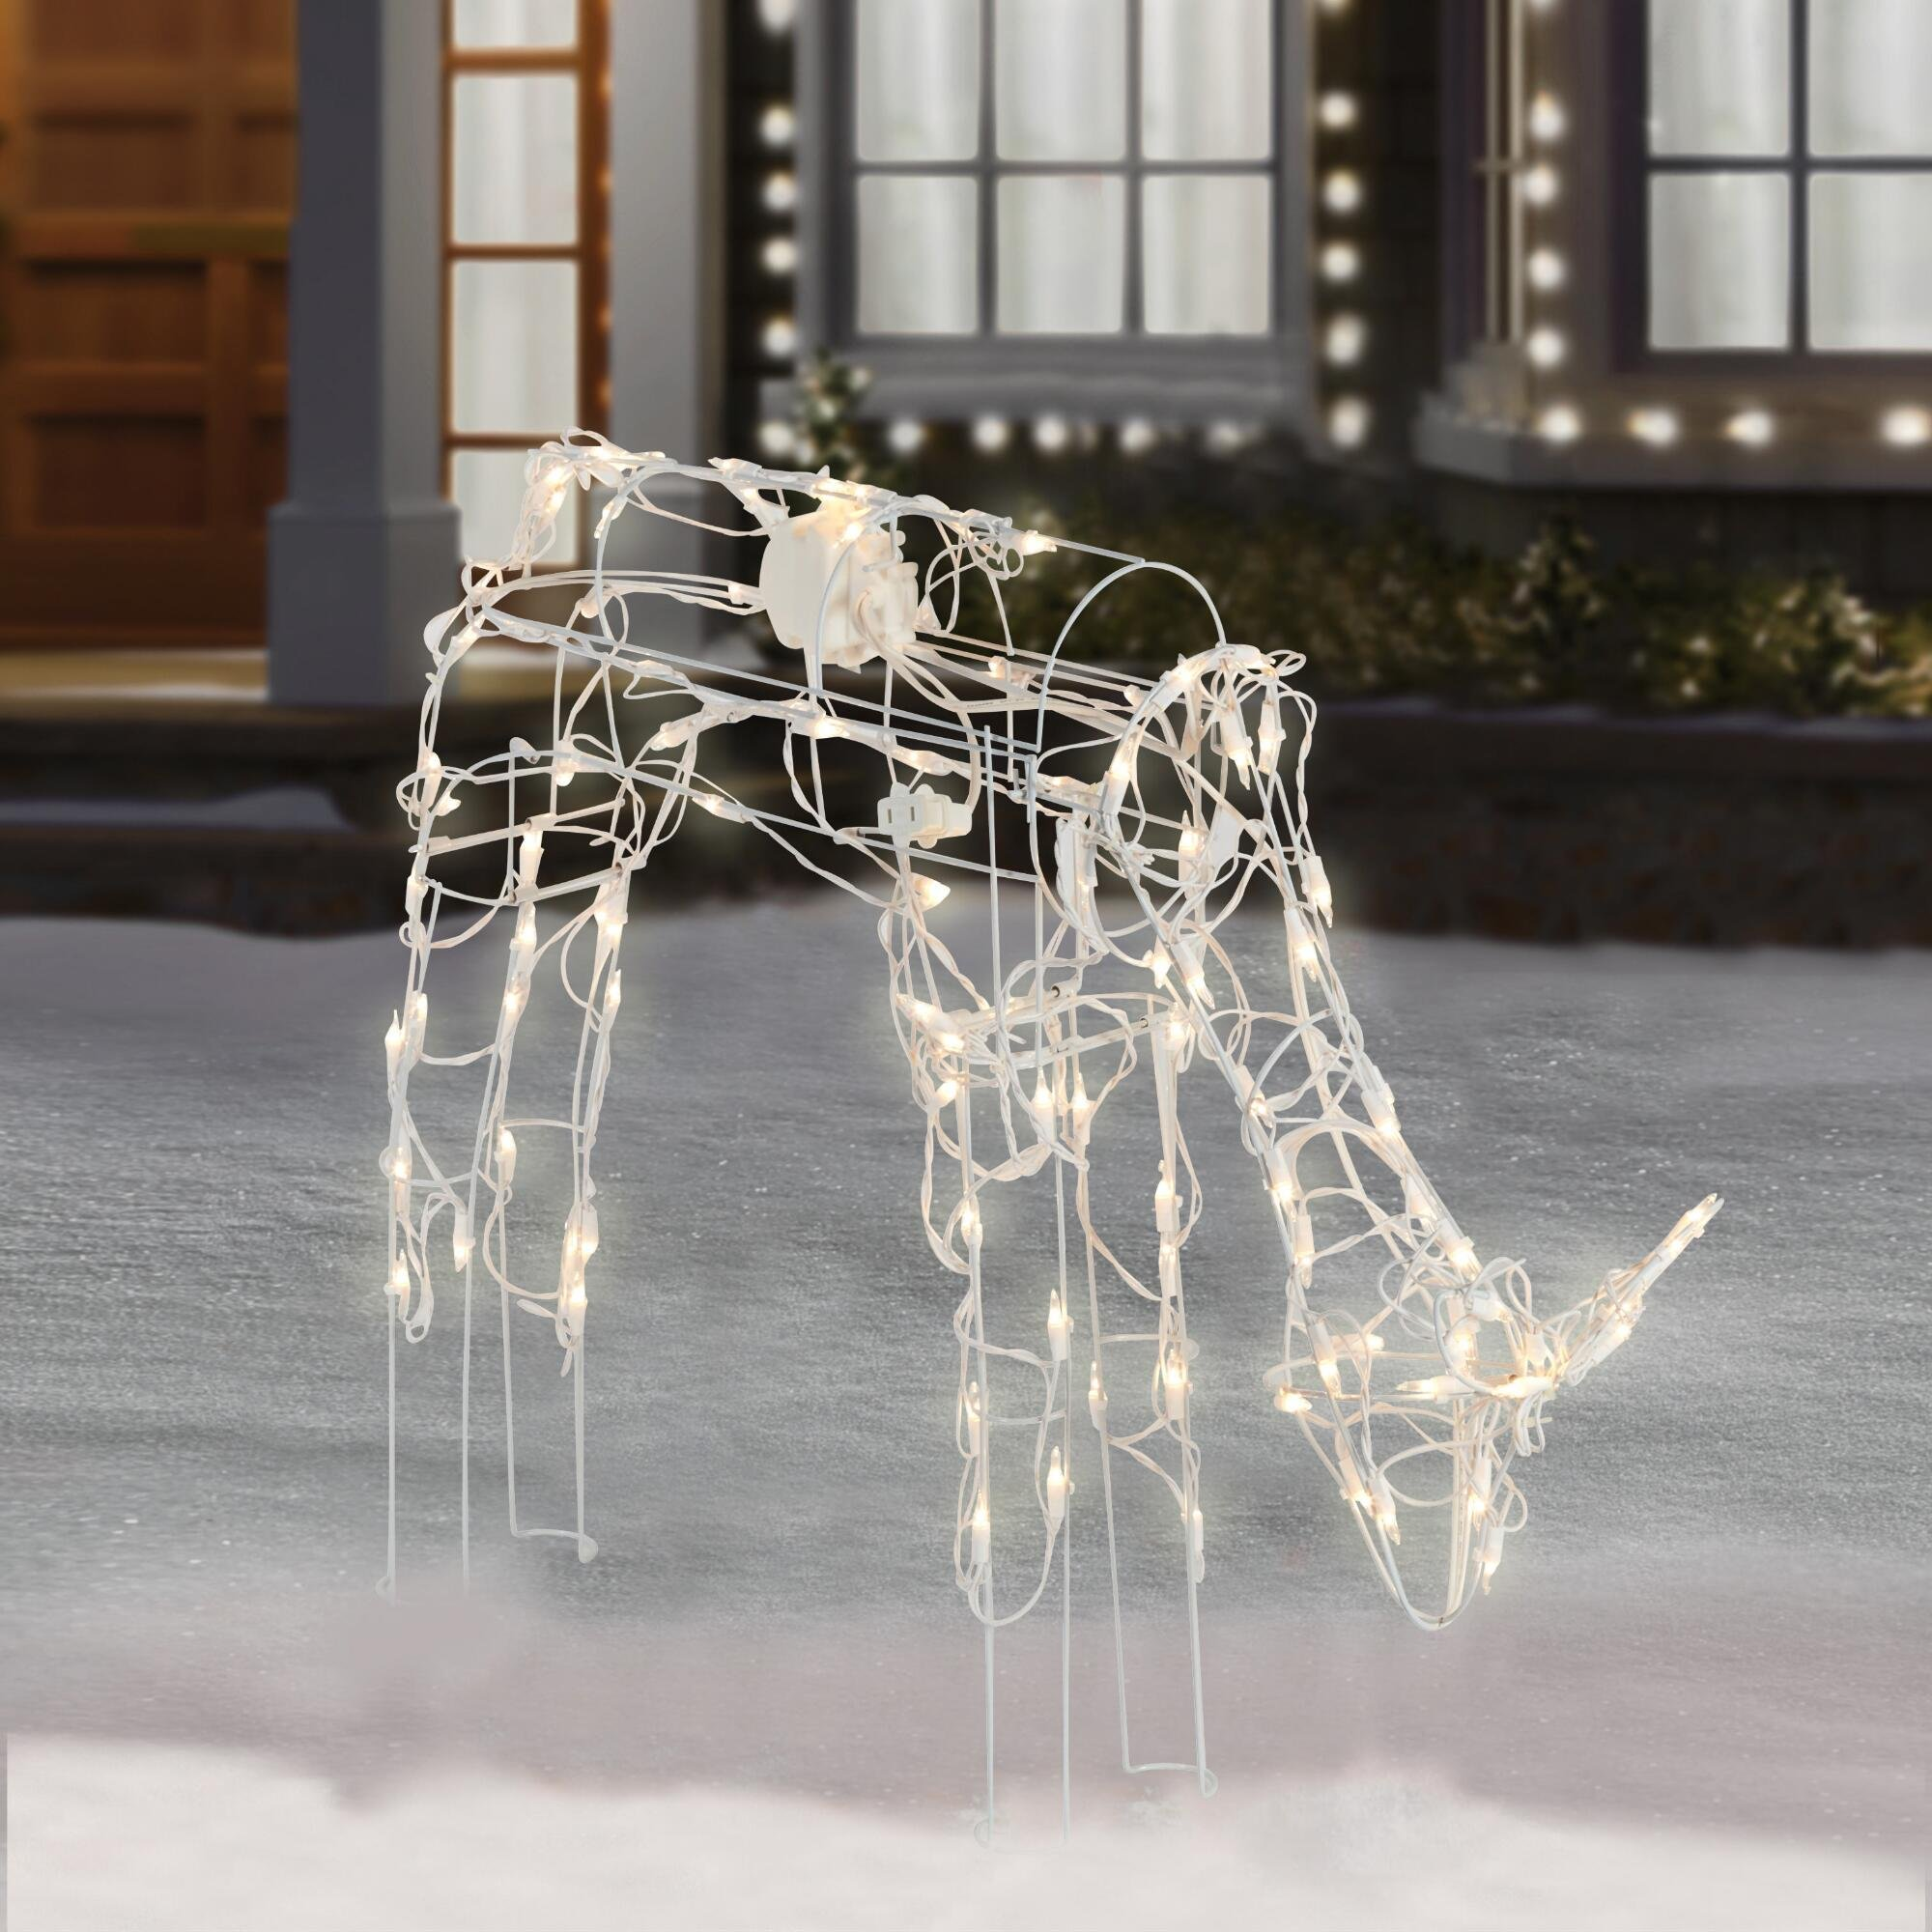 2-Piece Lighted Animated Holiday Deer Family - 48'' Animated Buck and 42'' Animated Doe - 210 Clear Lights by Winter Wonder Lane (Image #3)